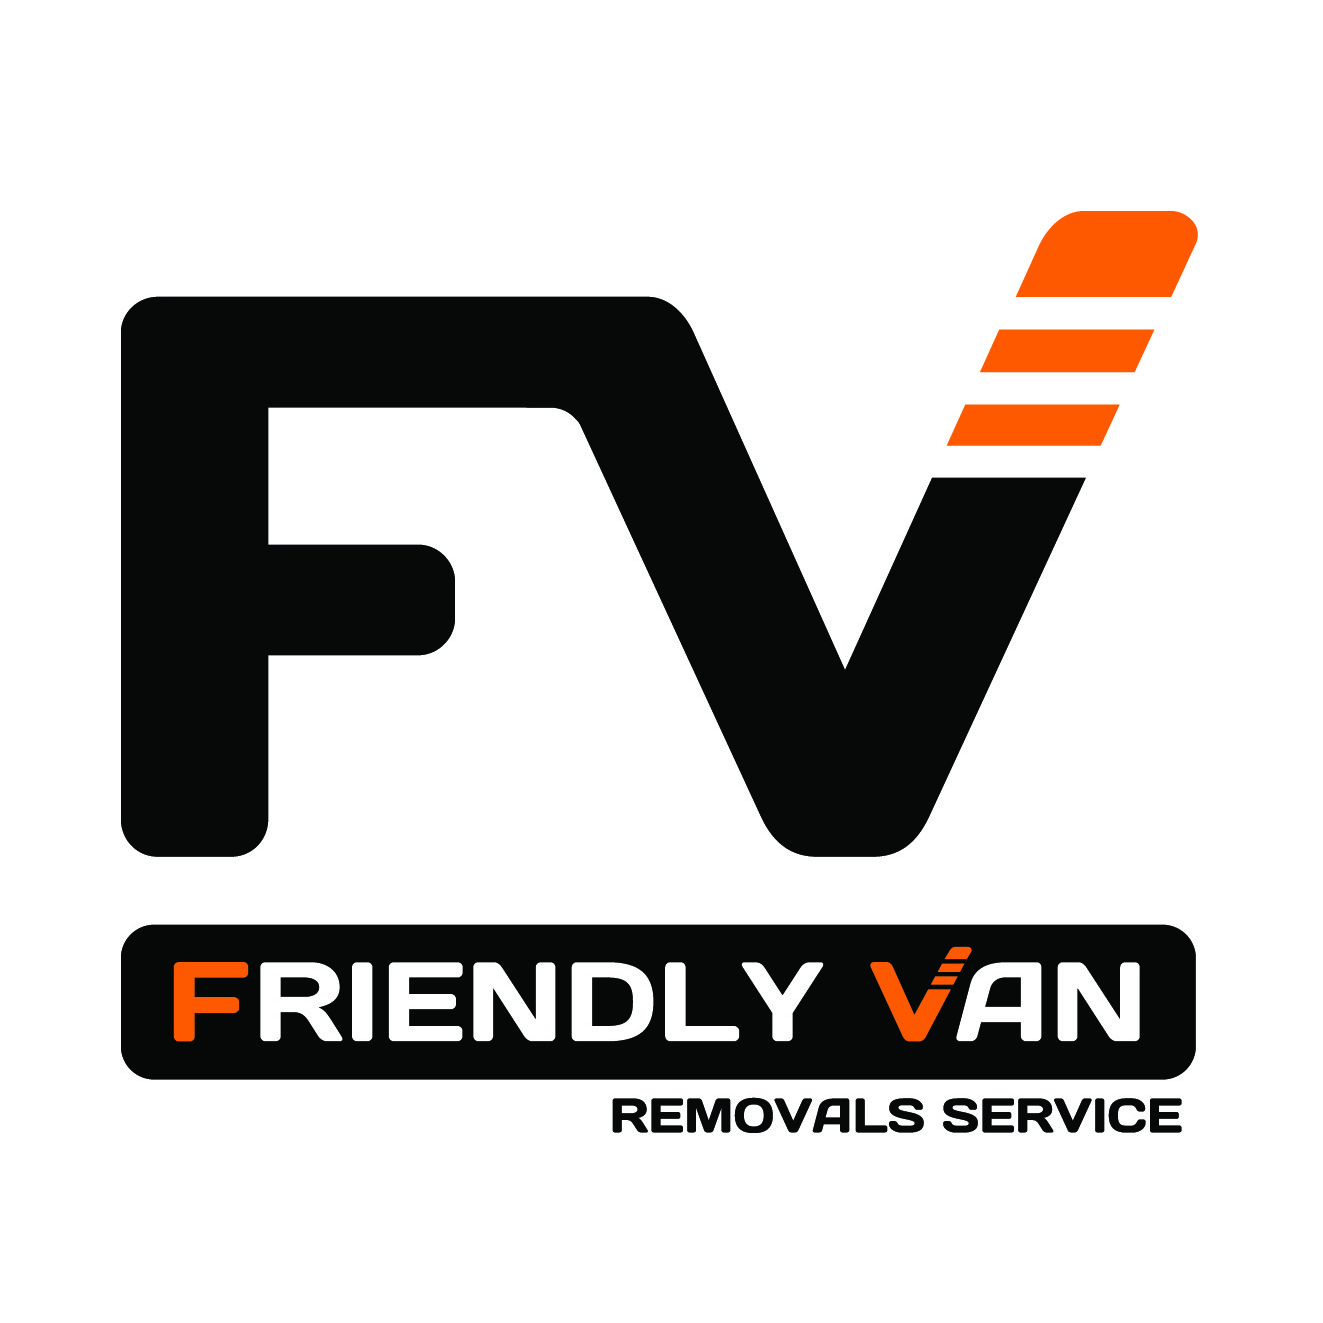 Friendly Van Removals